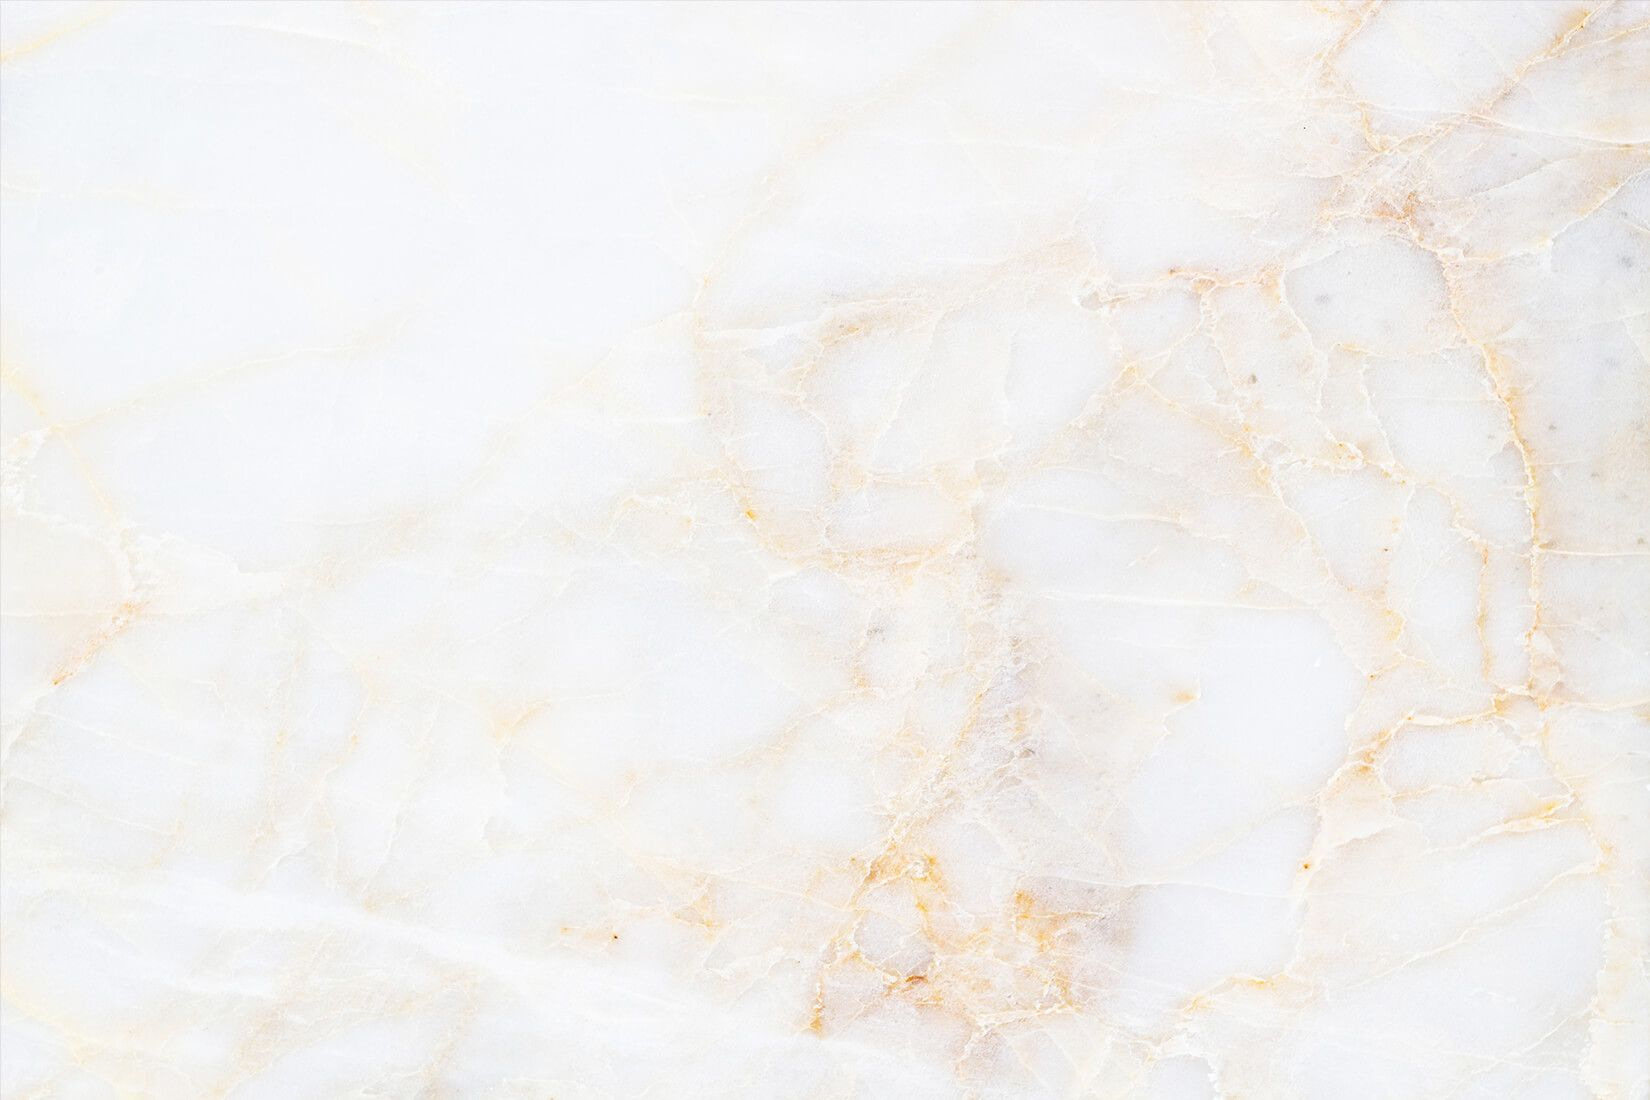 White Grey Gld Marble Iphone Wallpaper Background Phone Lock Screen Marble Wallpaper Phone White And Gold Wallpaper Gold Wallpaper